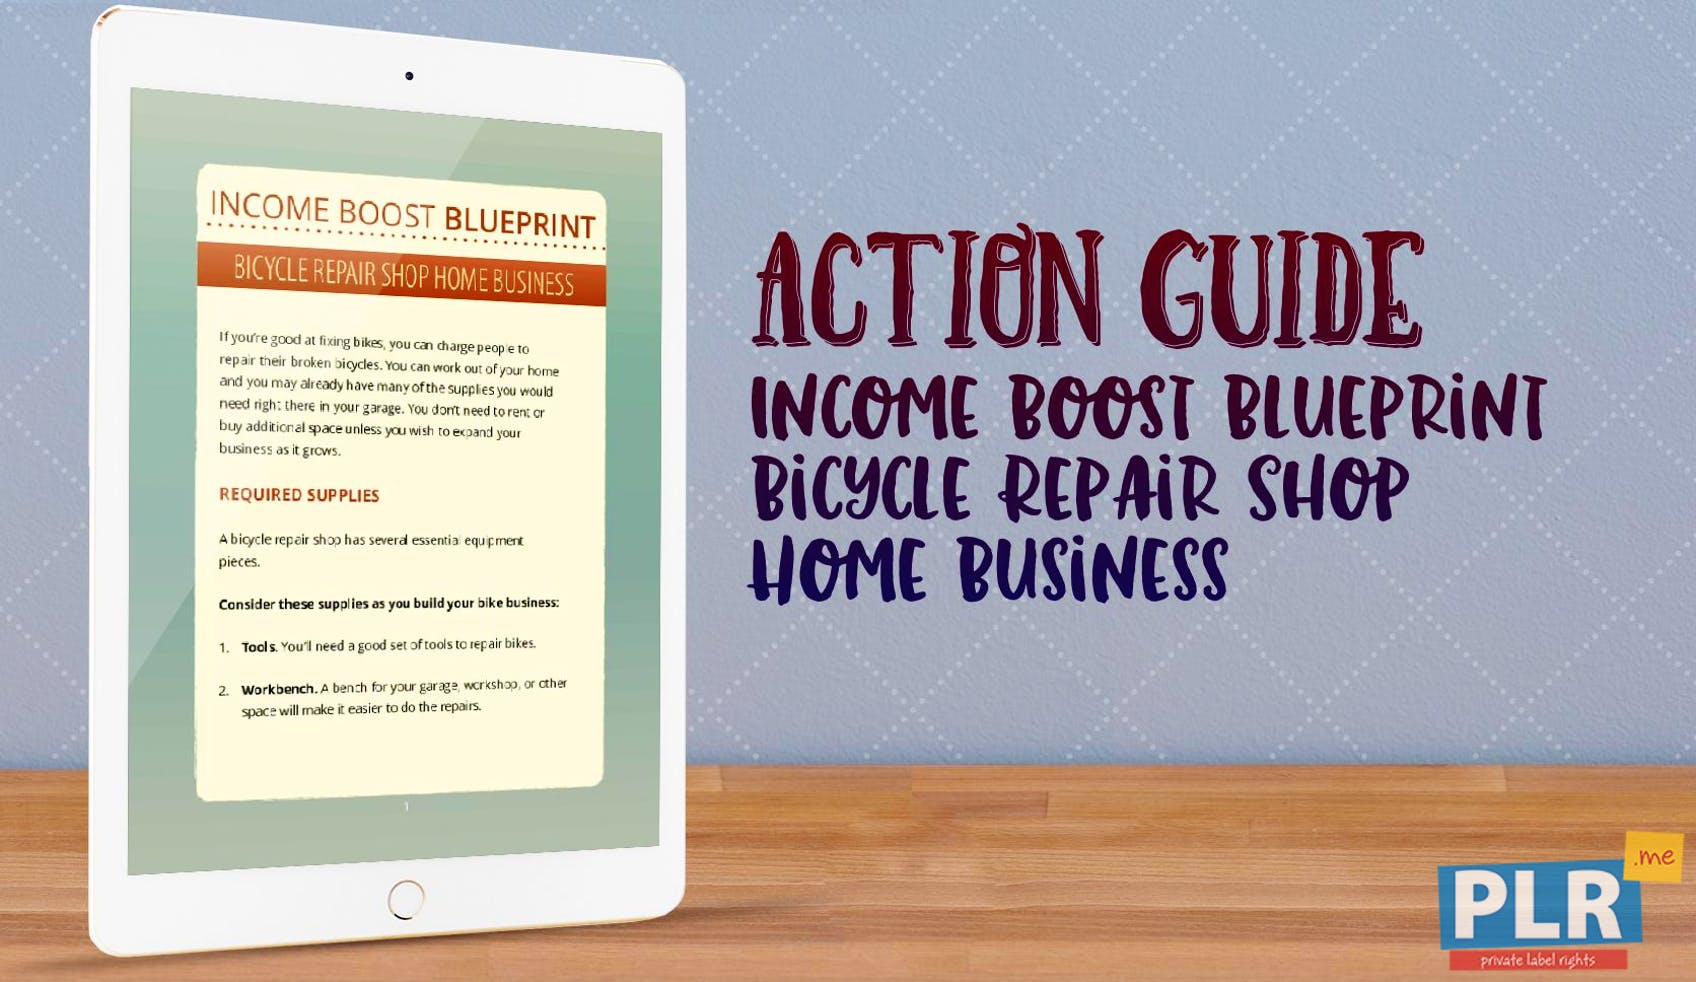 Income Boost Blueprint Bicycle Repair Shop Home Business